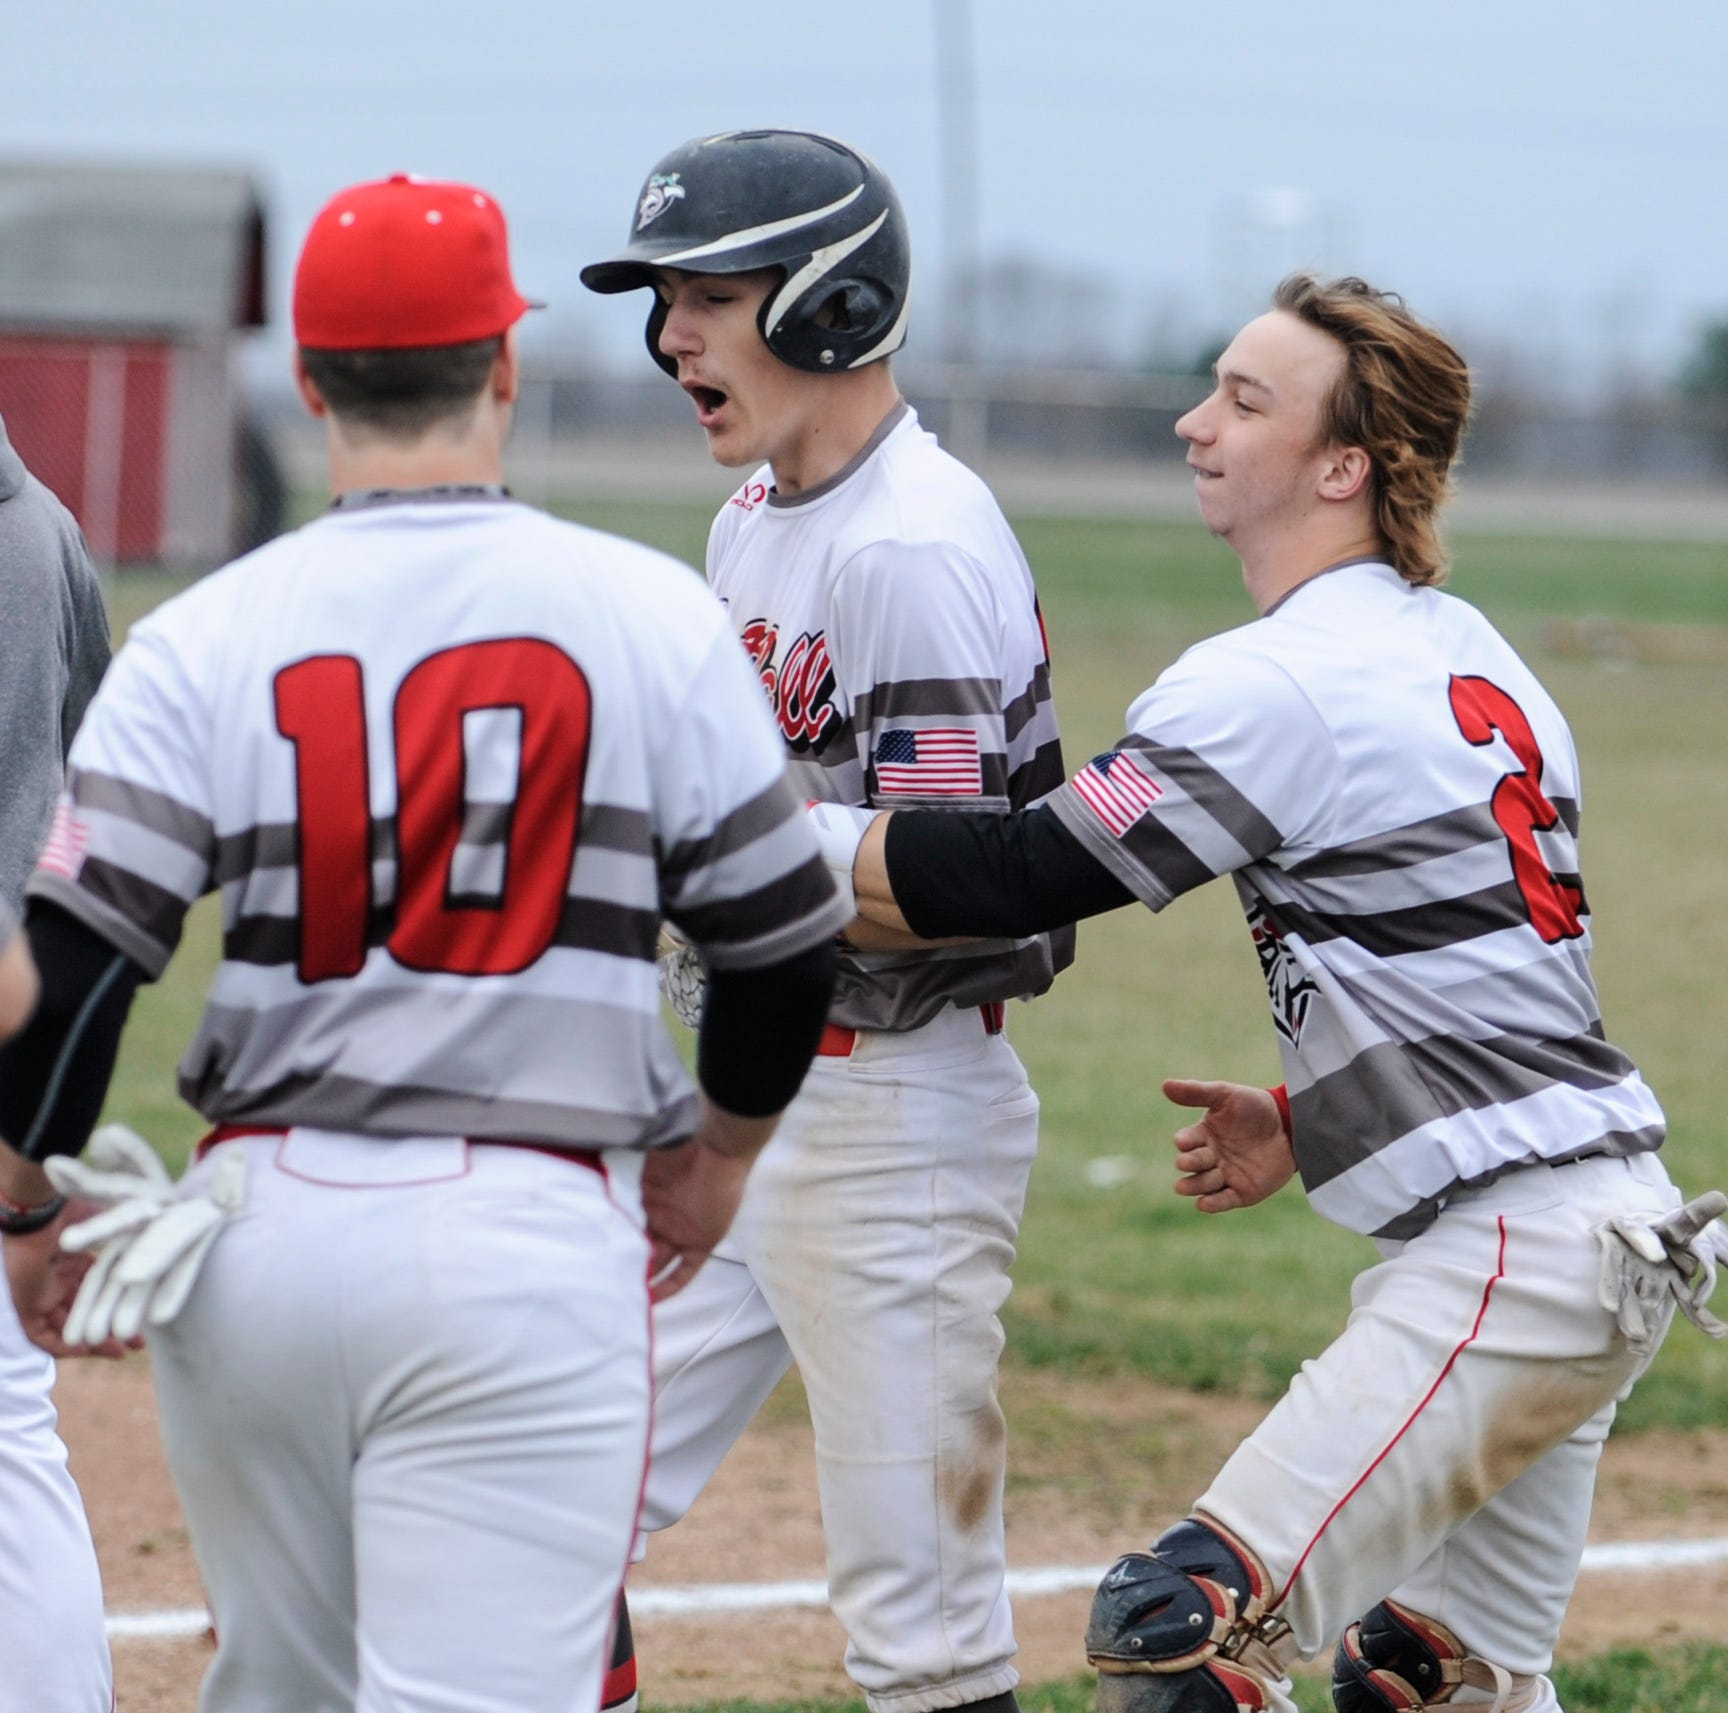 OHIO HS BASEBALL: Westfall defeats Paint Valley 6-5 behind eighth-inning squeeze bunt